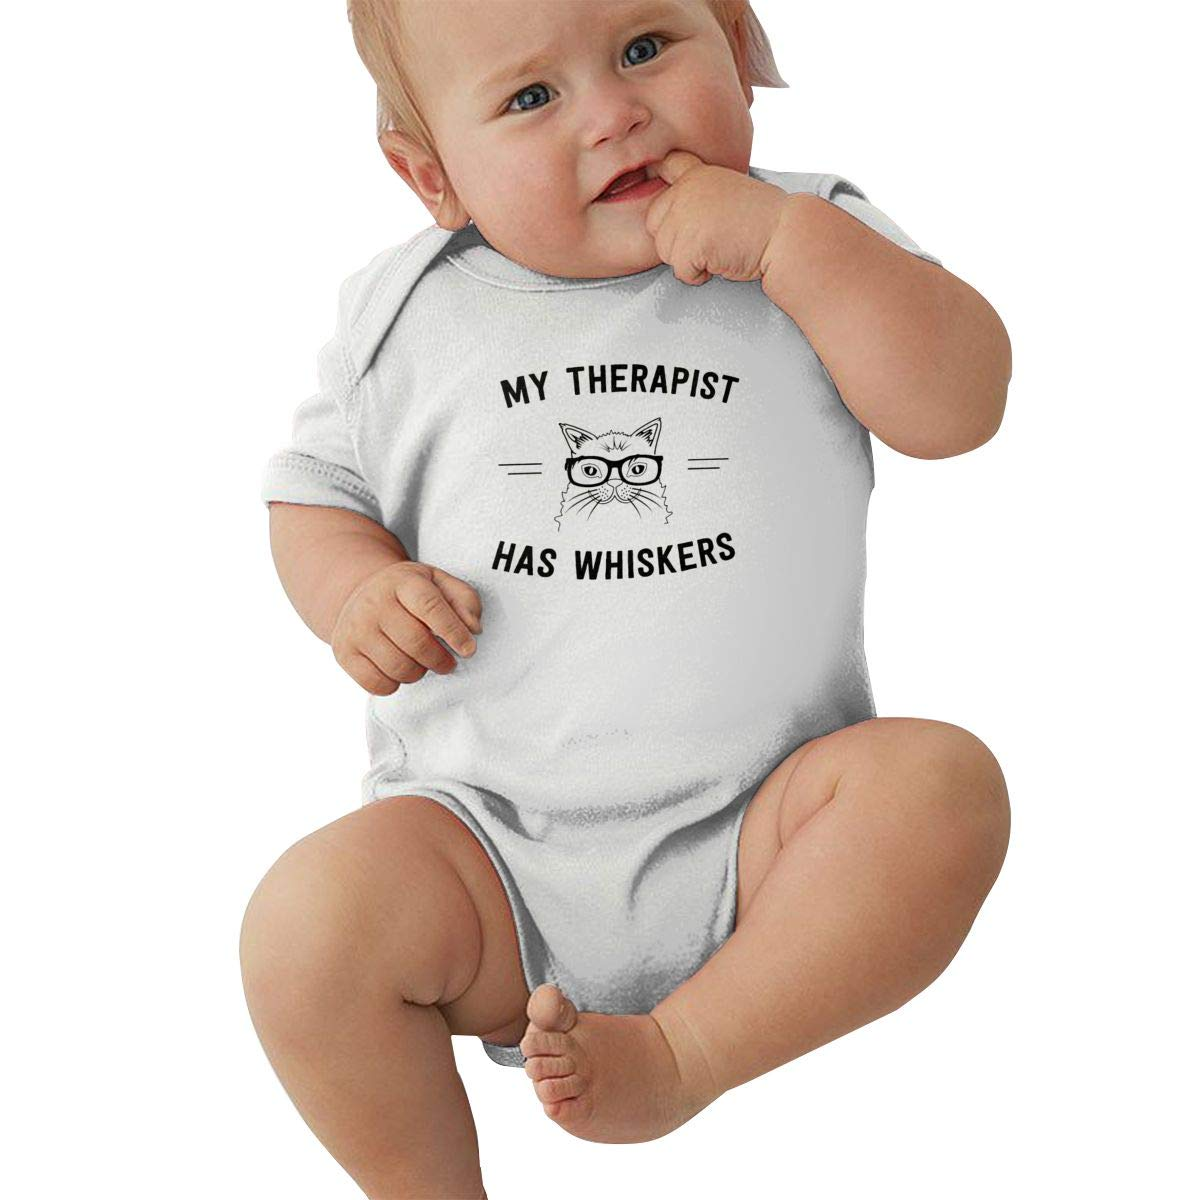 Dfenere My Therapist Has Whiskers Graphic Newborn Baby Short Sleeve Bodysuit Romper Infant Summer Clothing Pink